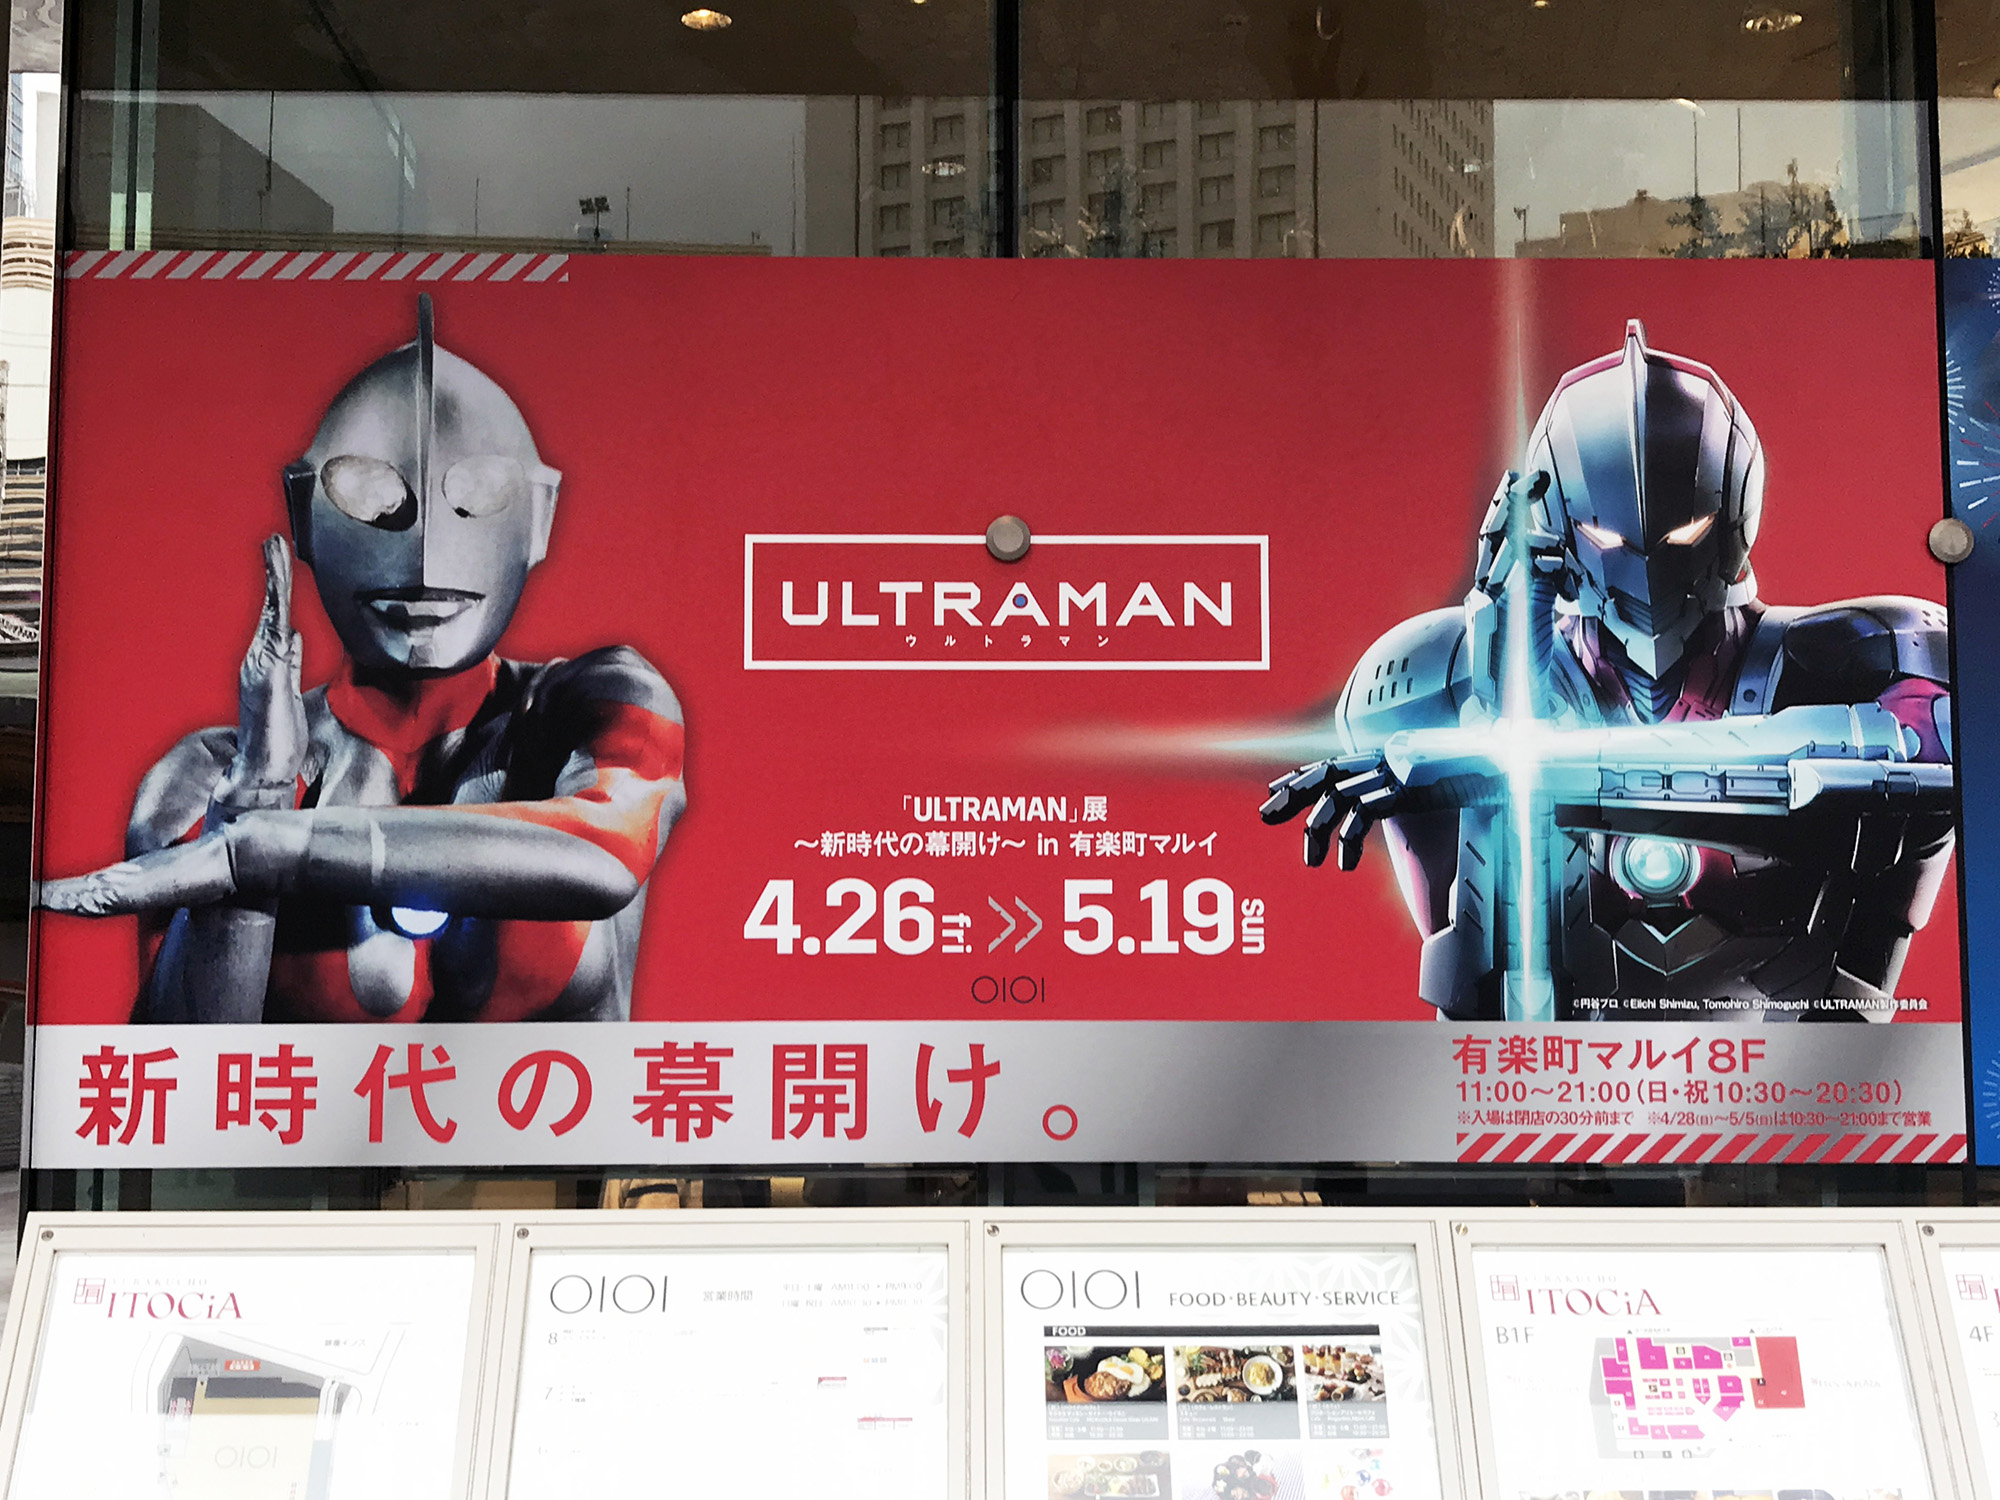 ultramanexhibit_01.jpg